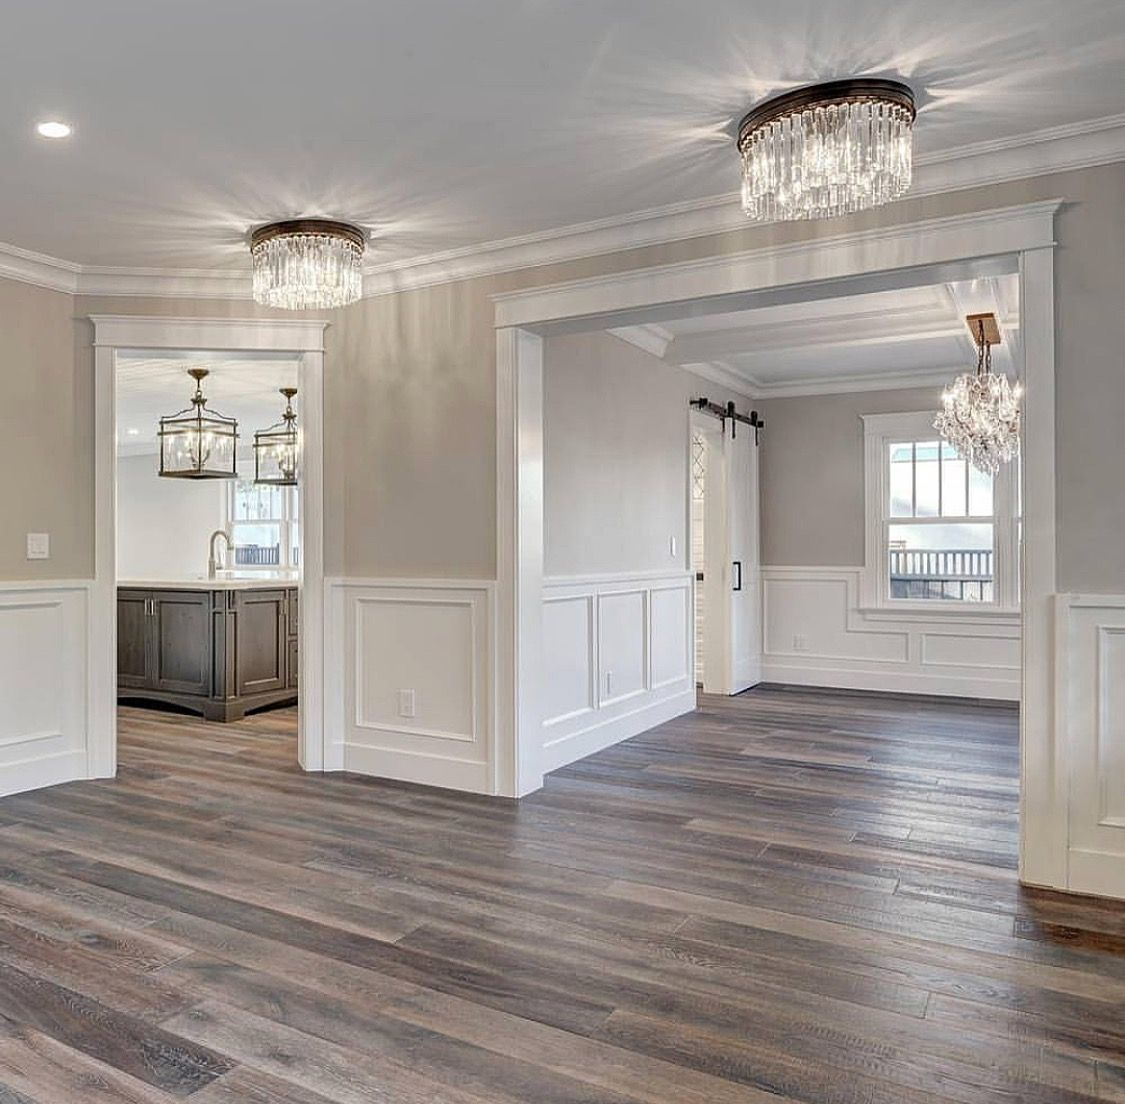 What Color Wood Floor With Gray Walls: Main Floor- Floor Color, Wall Color, Window And Opening